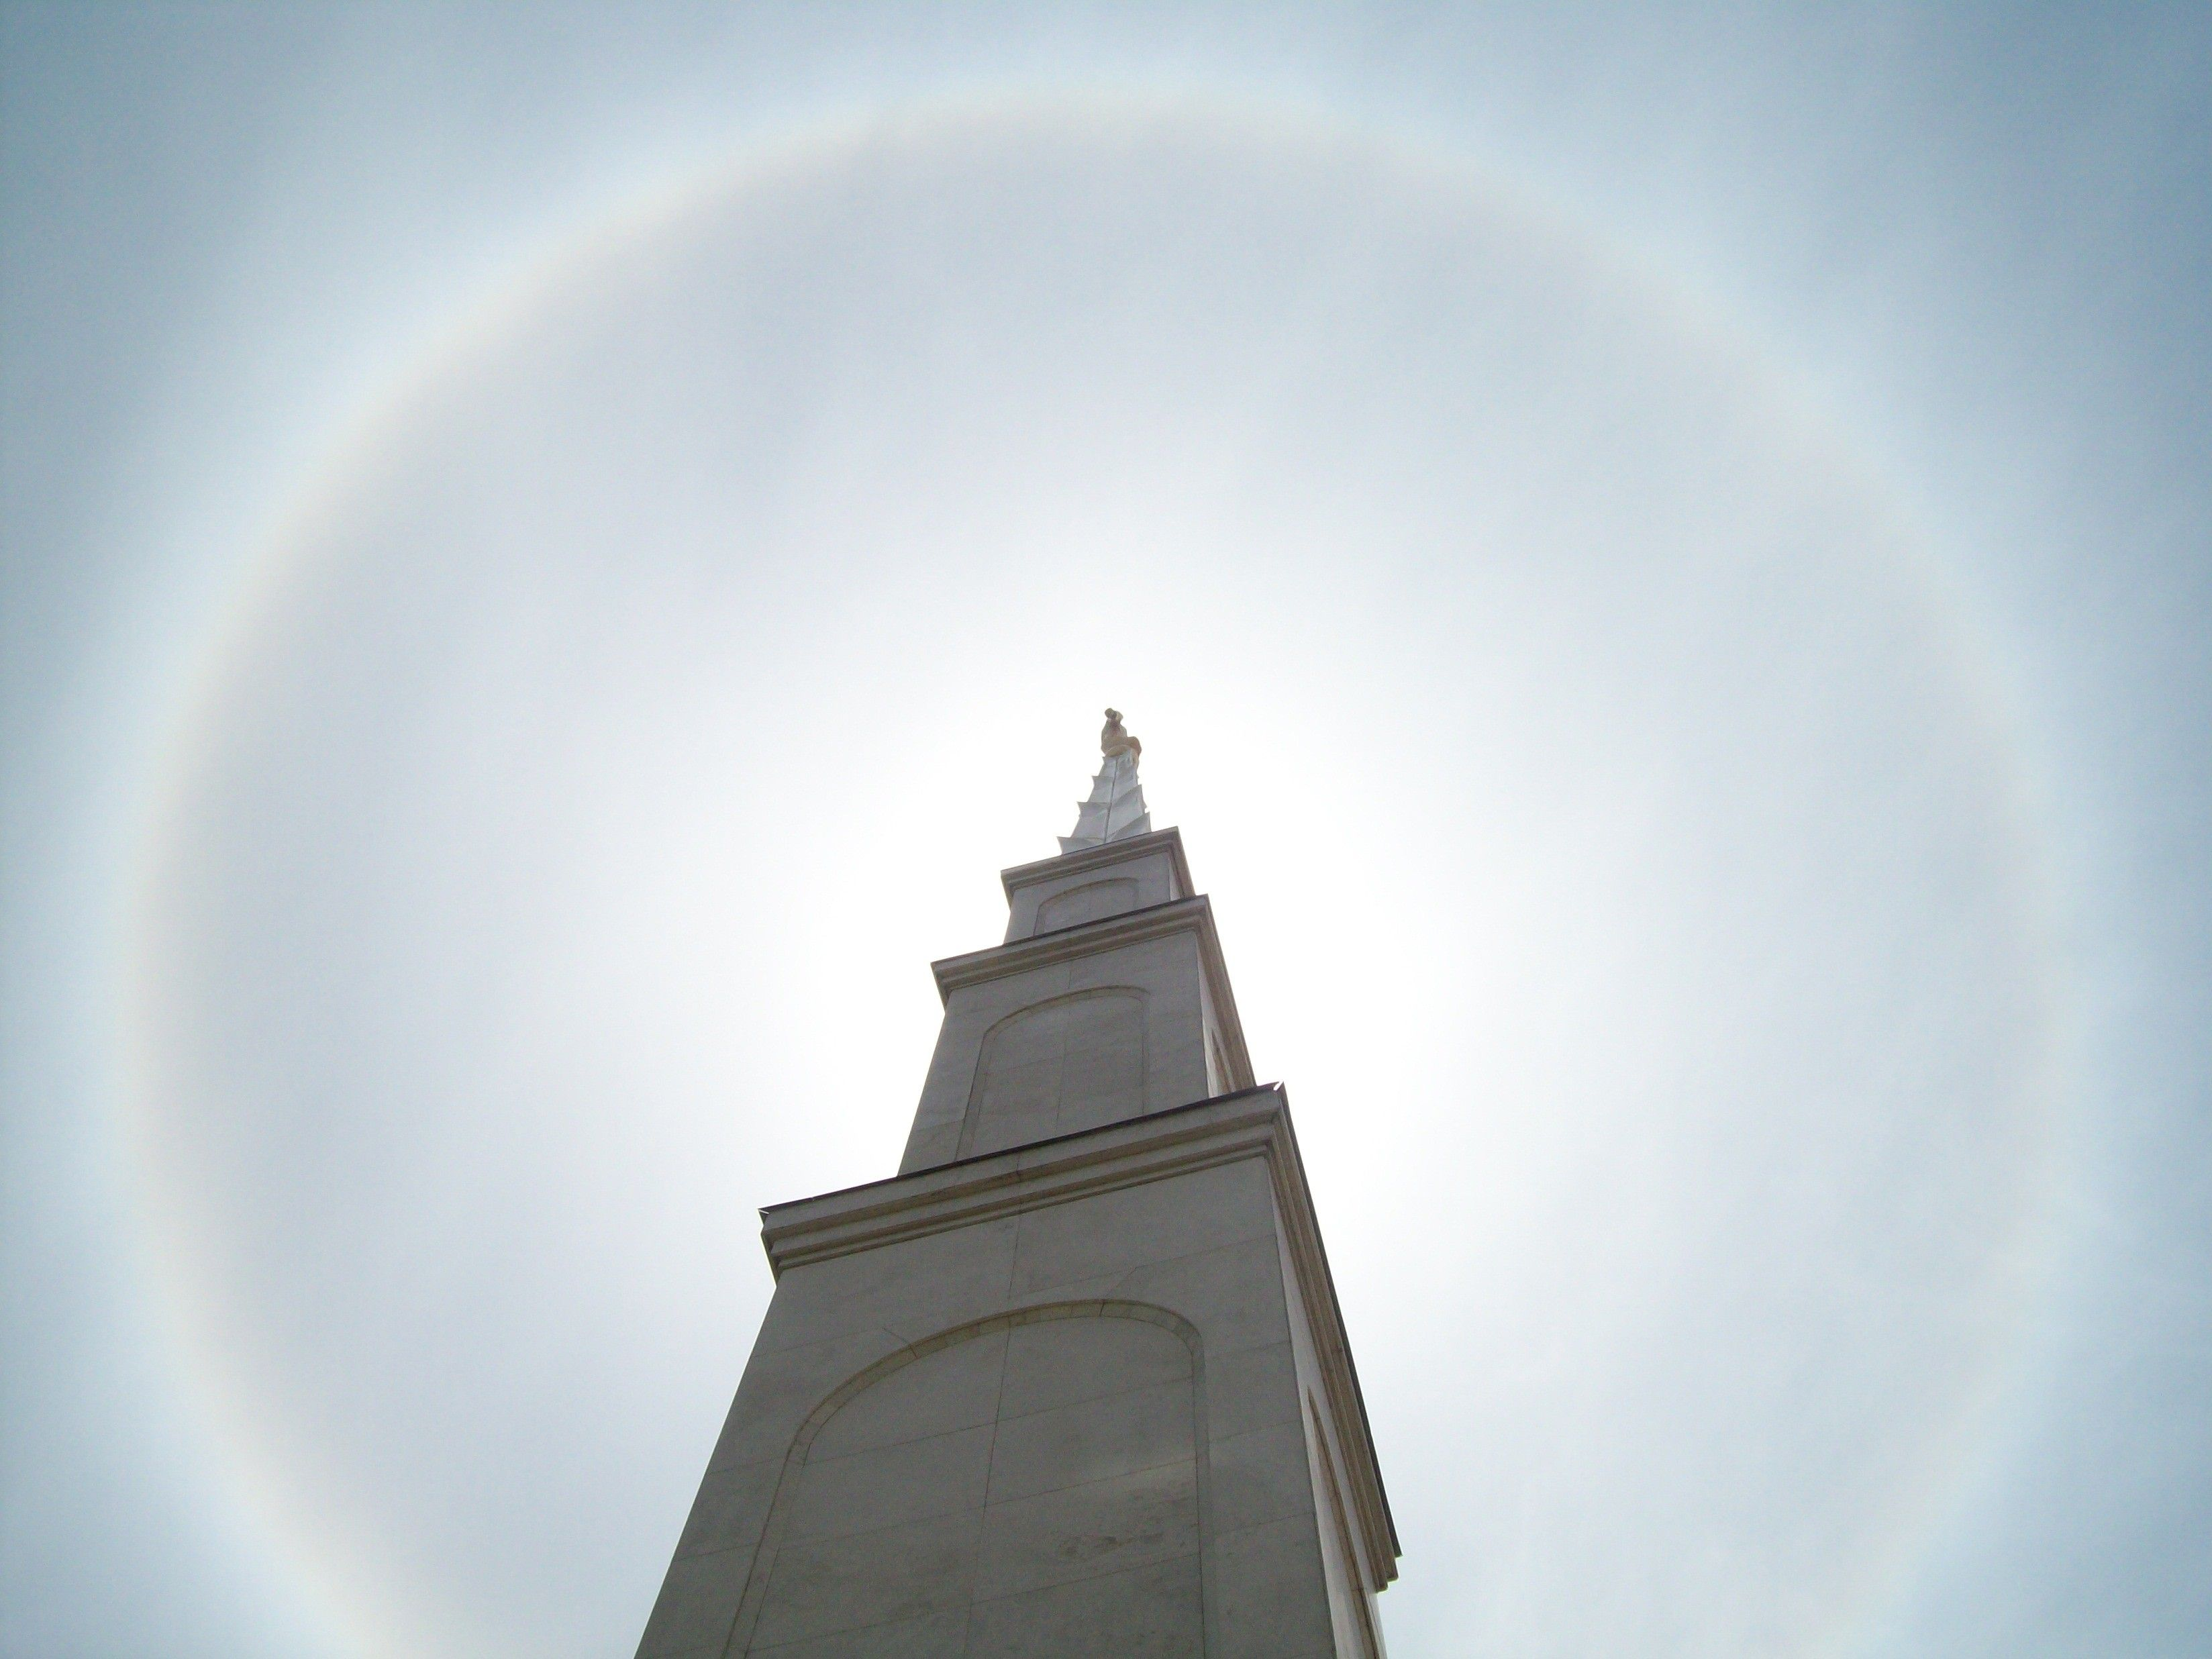 A spire of the Lima Peru Temple in sunshine.